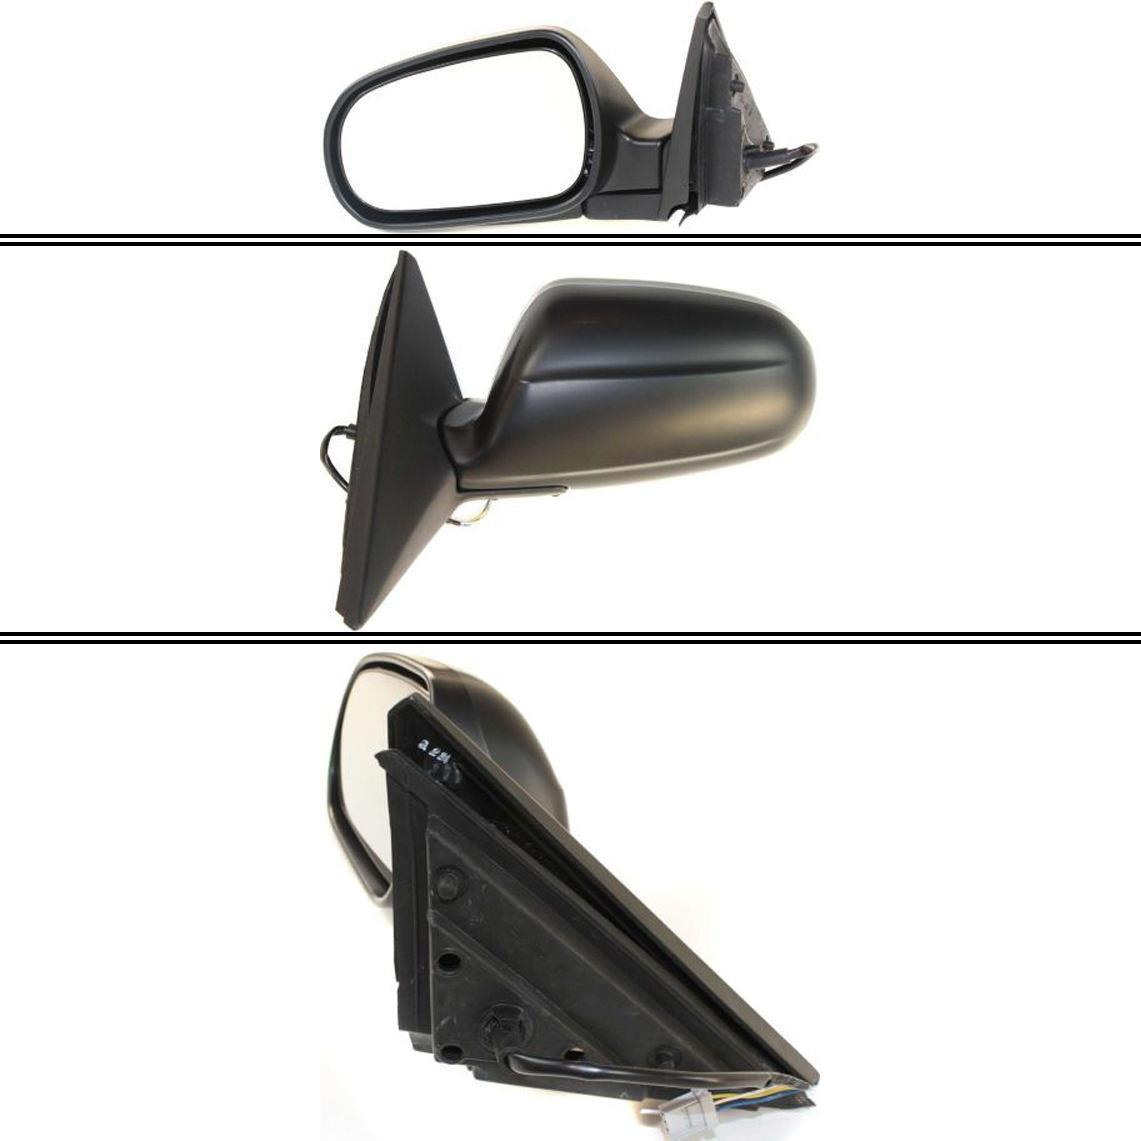 New Driver Side Mirror For Honda Prelude 1997-2001 HO1320145